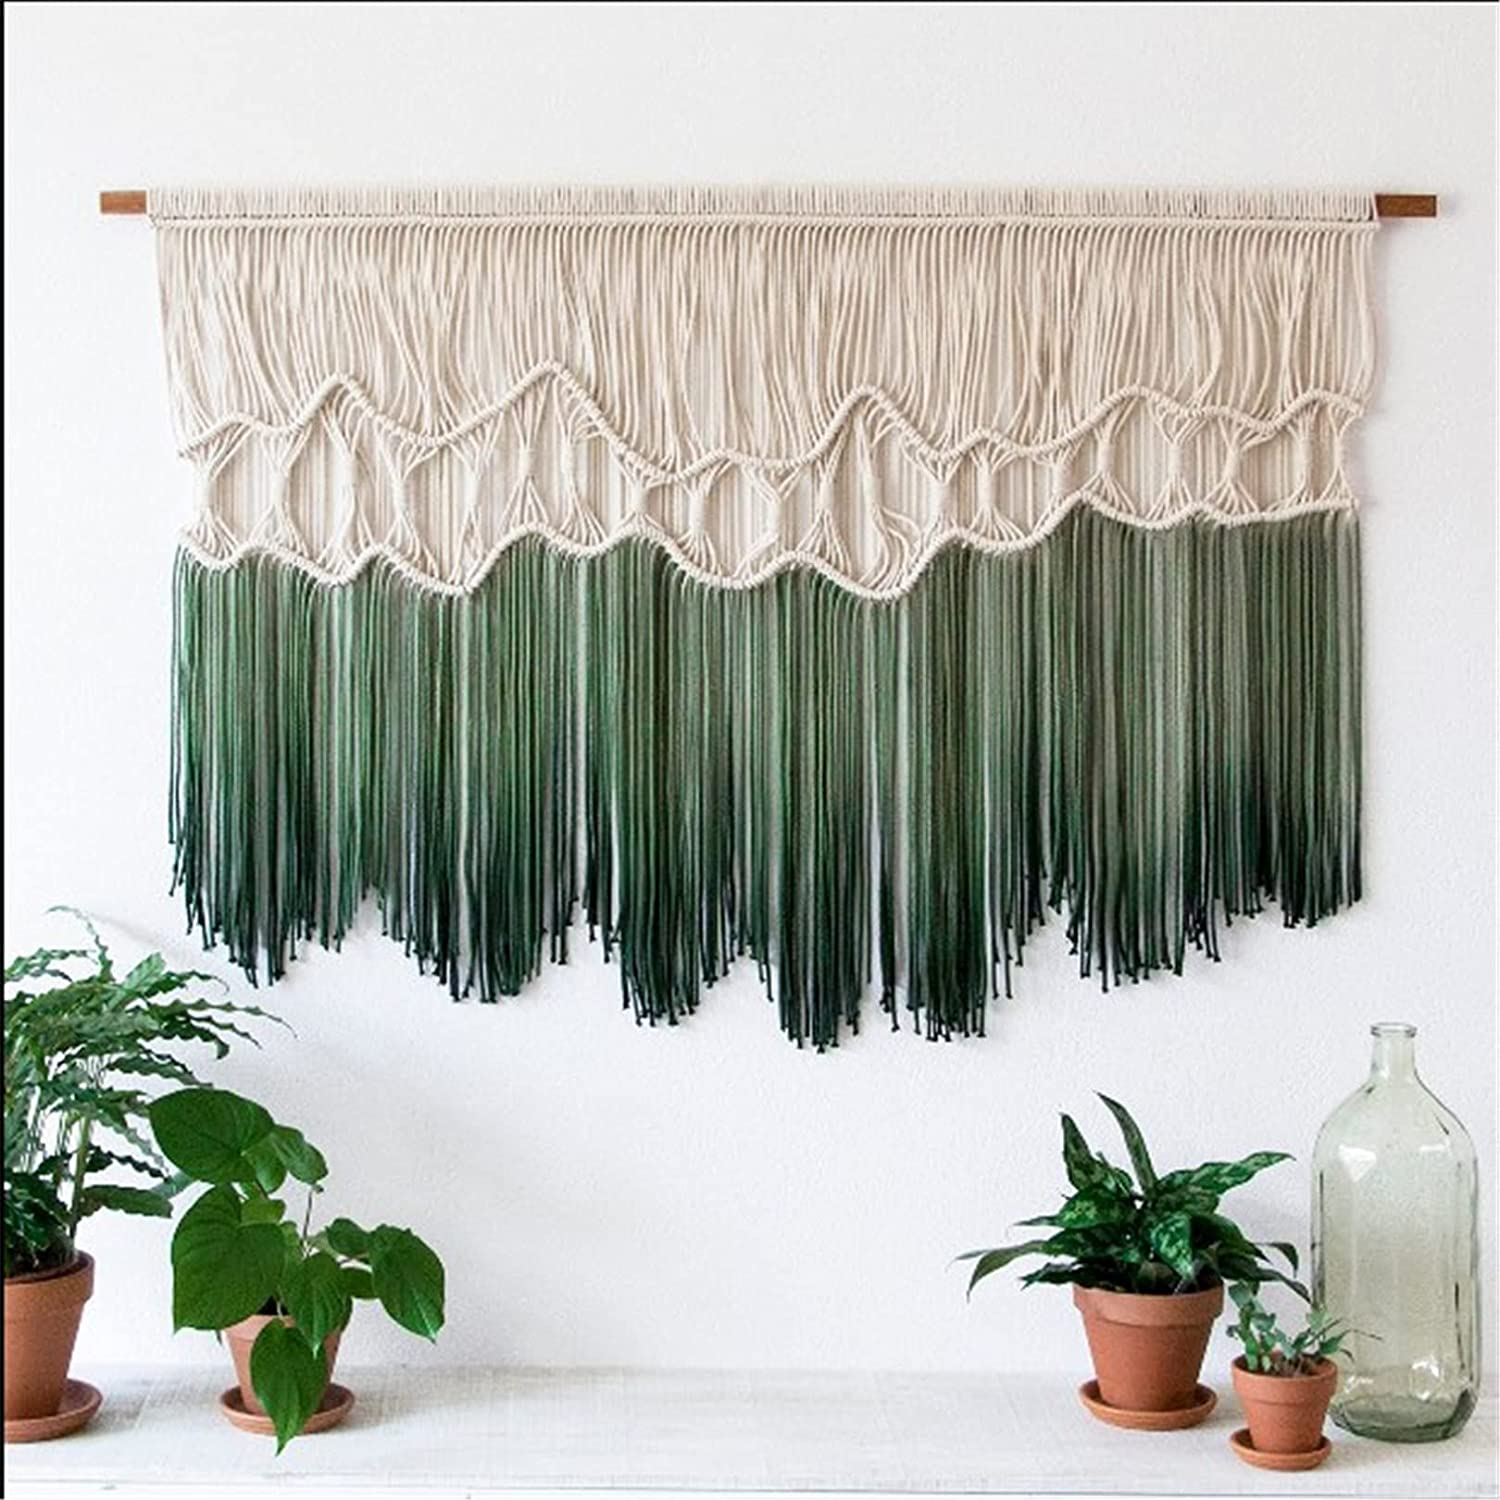 Snhpk Macrame Wall Hanging Curtain Bedroom Boho Indianapolis Mall Handm Decor Luxury with